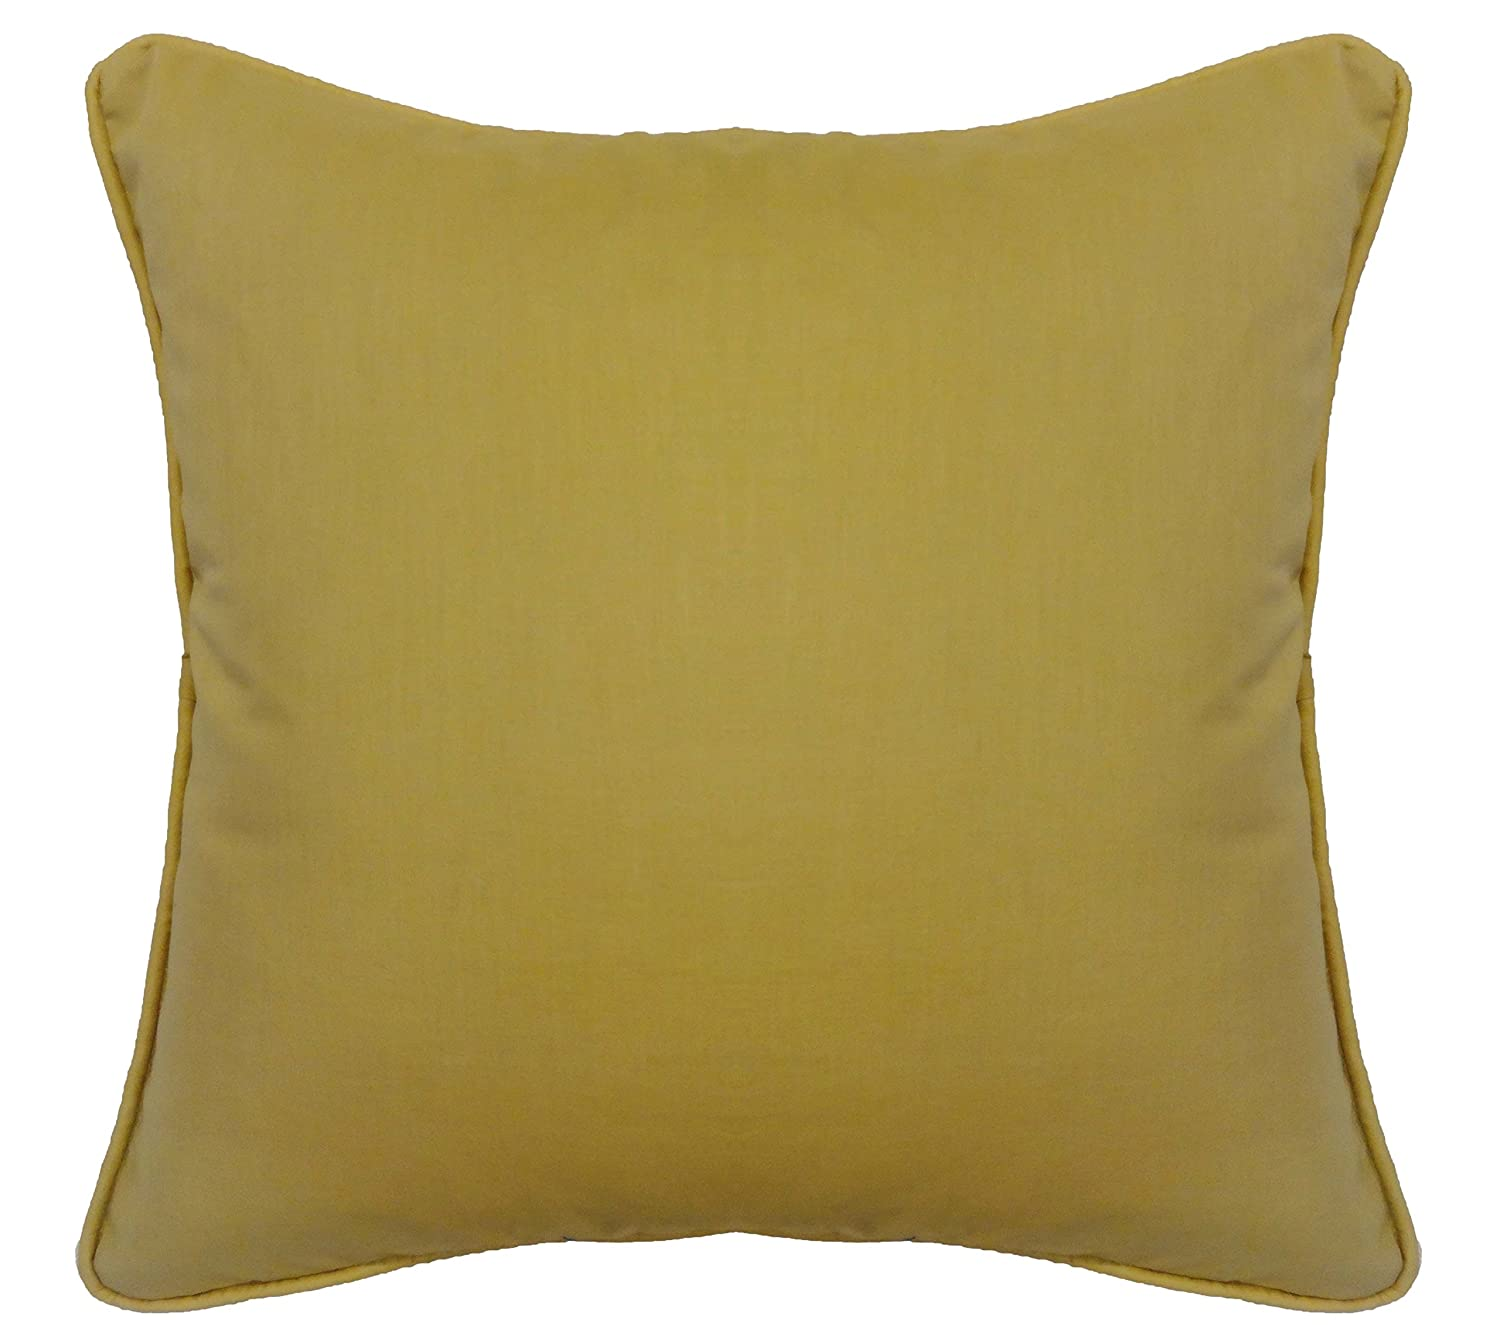 Saffron Beige Cotton Cushion Cover Pillow Case Cord Piping